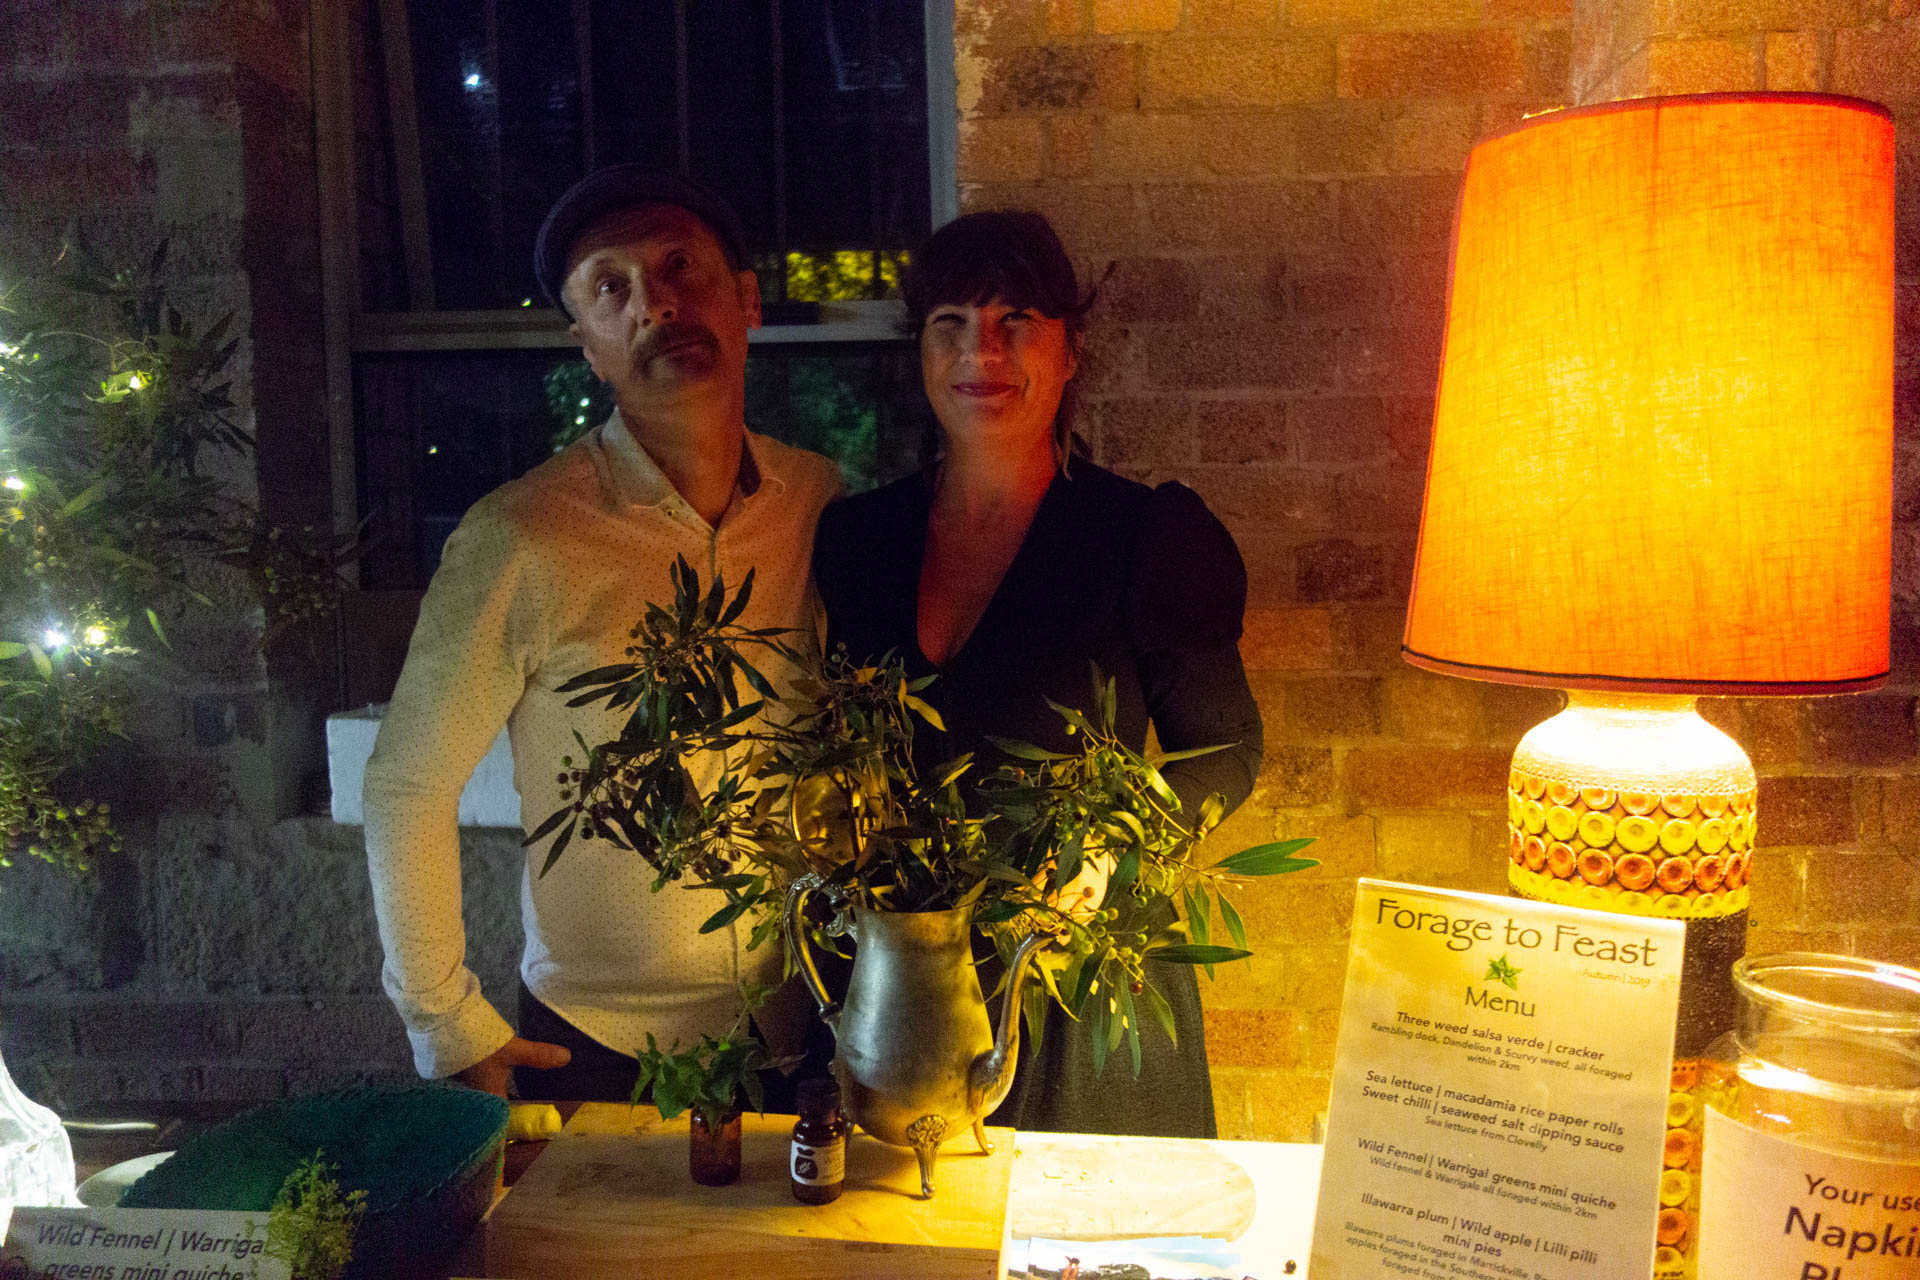 and thankyou to these two beautiful people for the delicious food from Forage to Feast, Diego Bonetto and Marni Fox.